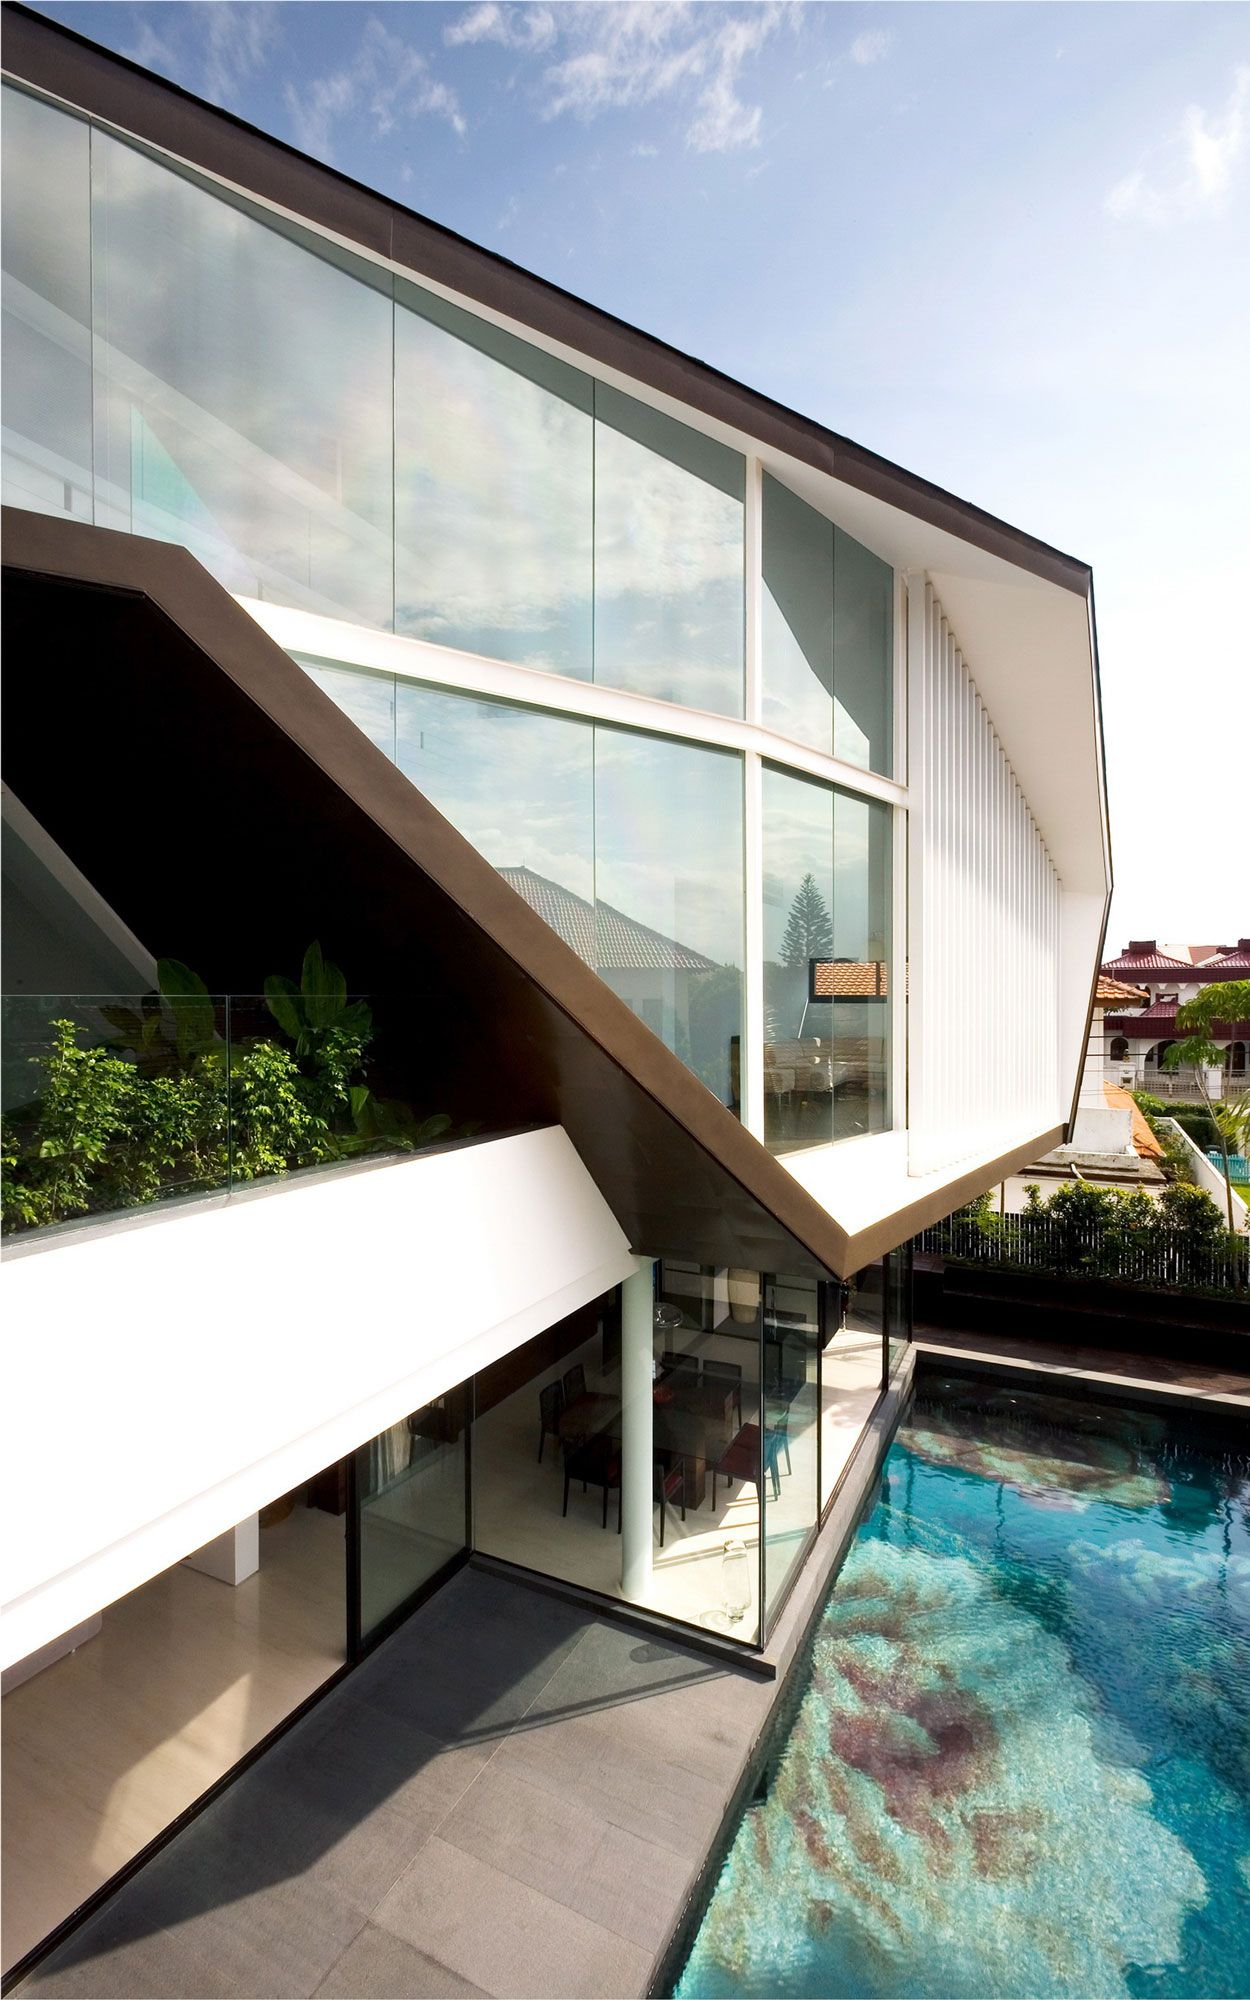 Perfect Singapore Based Studio Formwerkz Architects Has Designed The Origami House.  Completed In This Three Story Contemporary Home Is Located In Singapore. Amazing Design